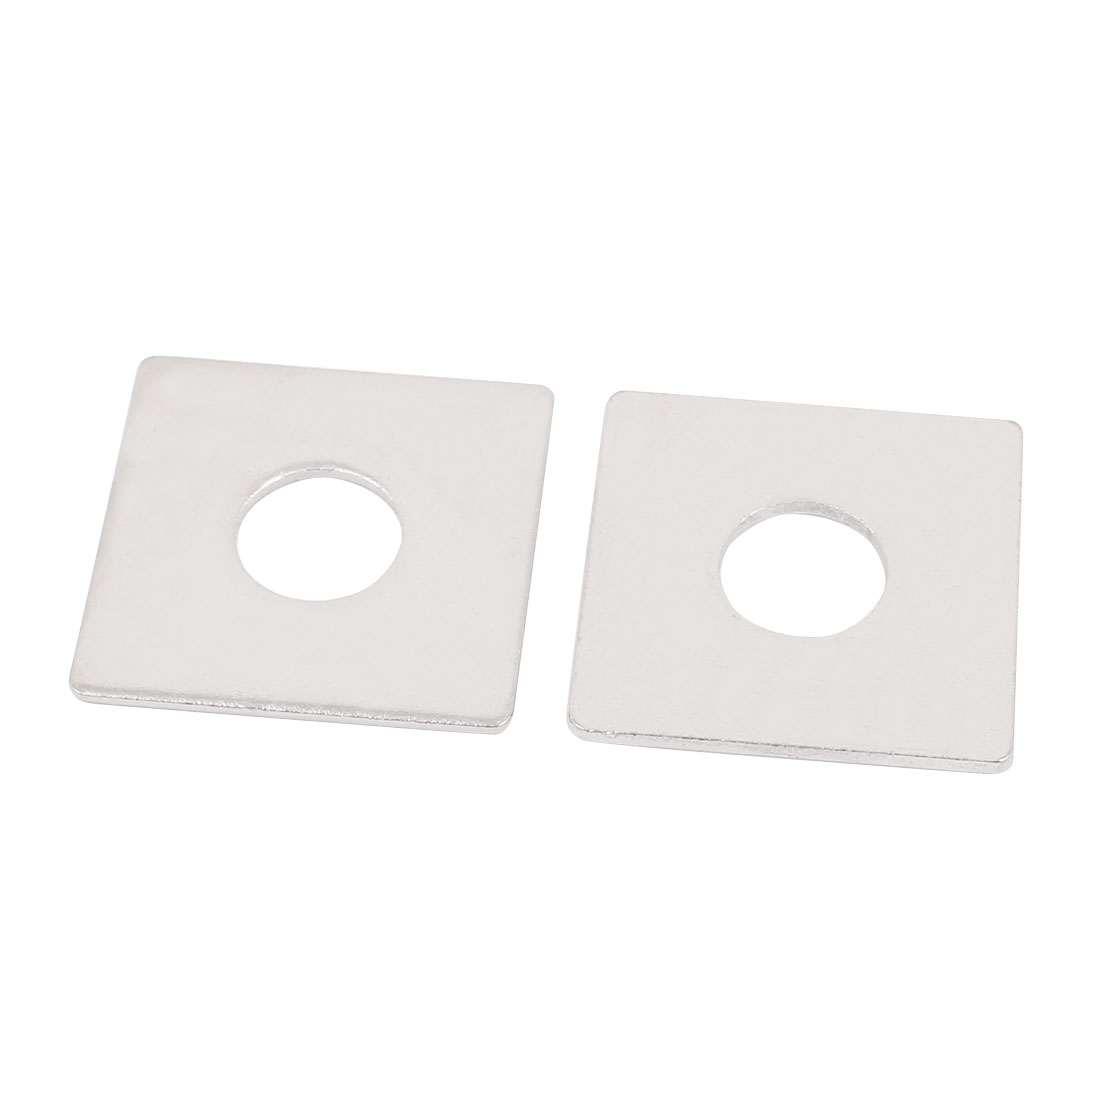 M14 x 40mm Square Stainless Steel Flat Repair Plate Silver Tone 2pcs